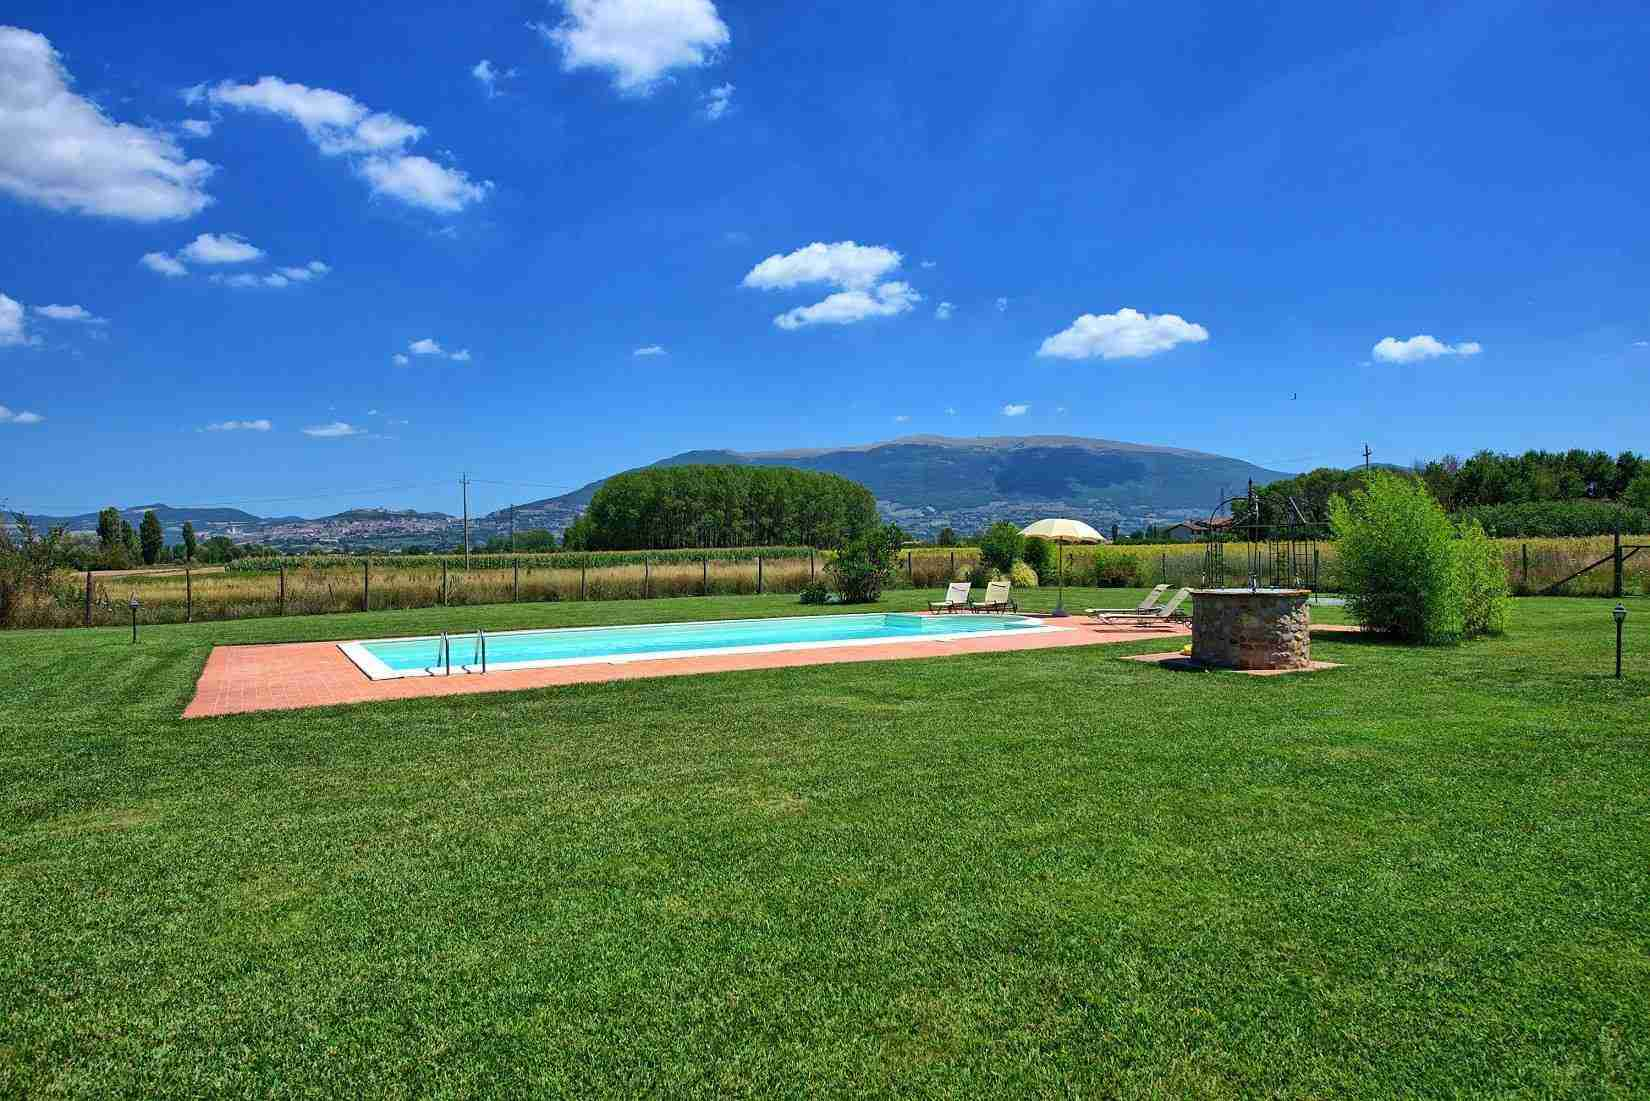 1 Assisi garden with pool